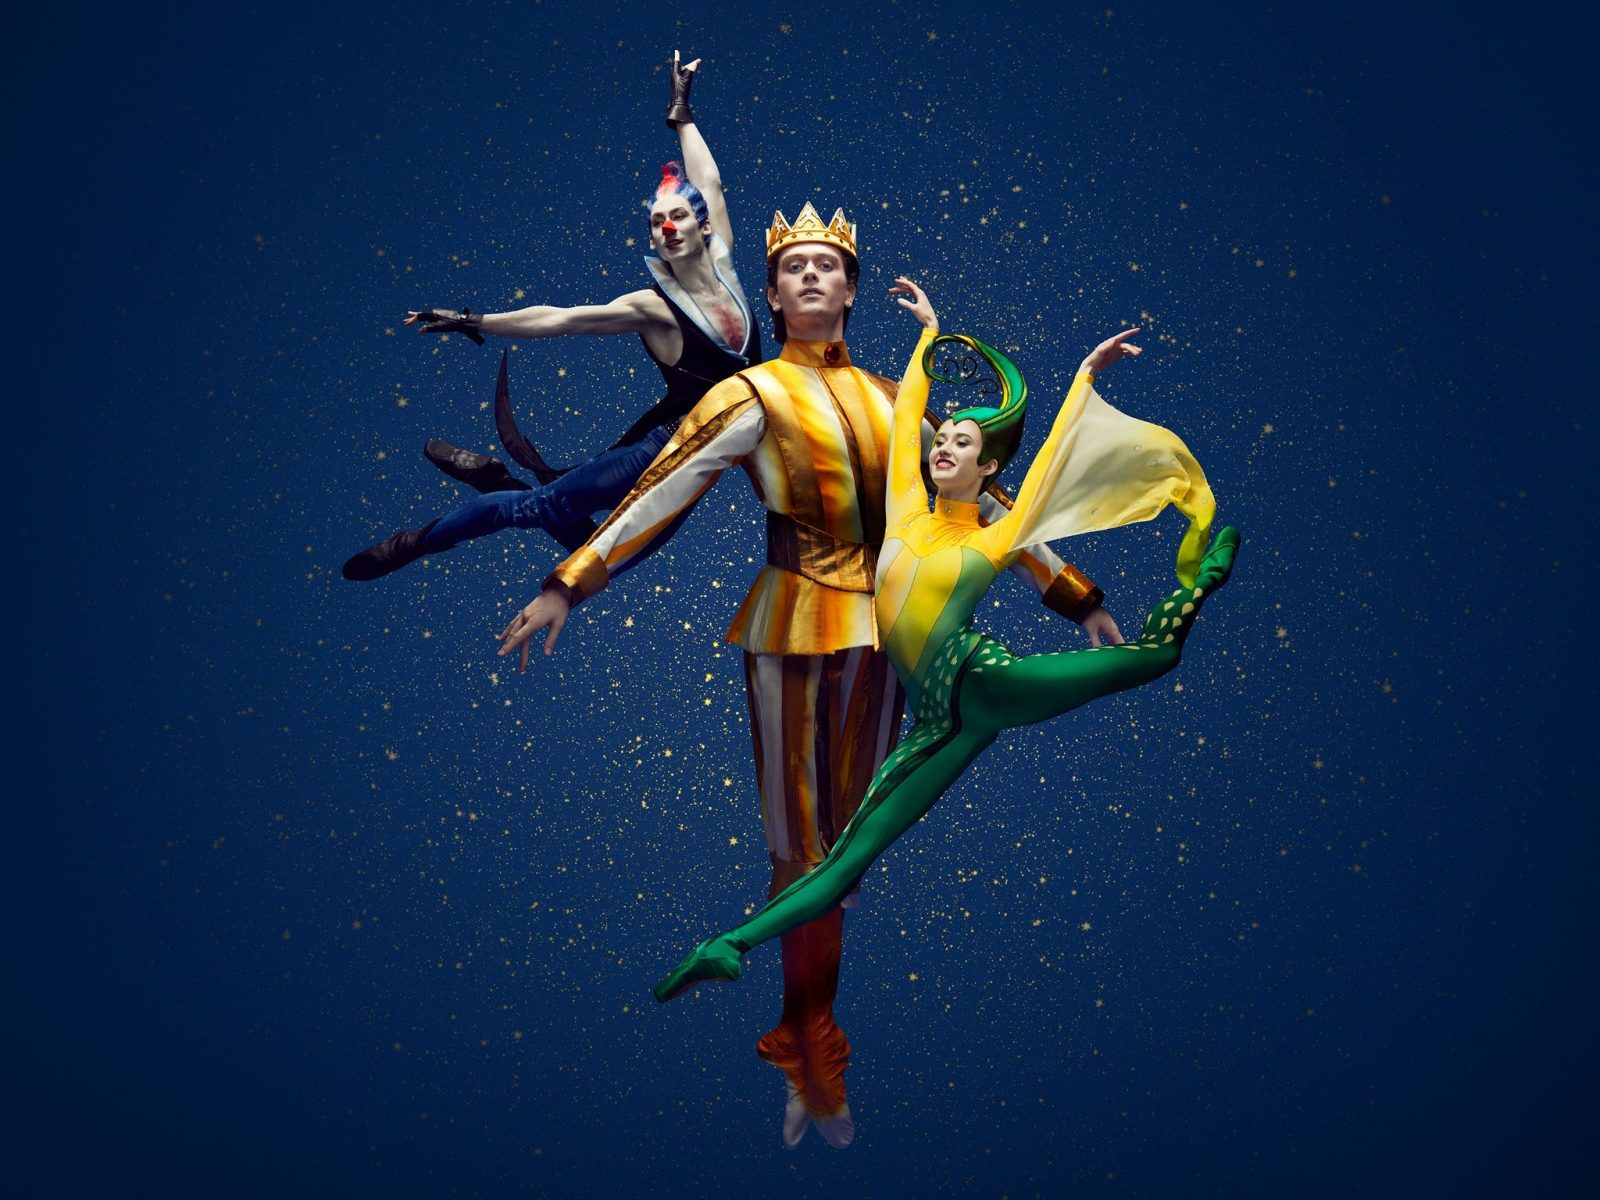 Three people are suspended in balletic poses - one standing tall dressed as a yellow prince.